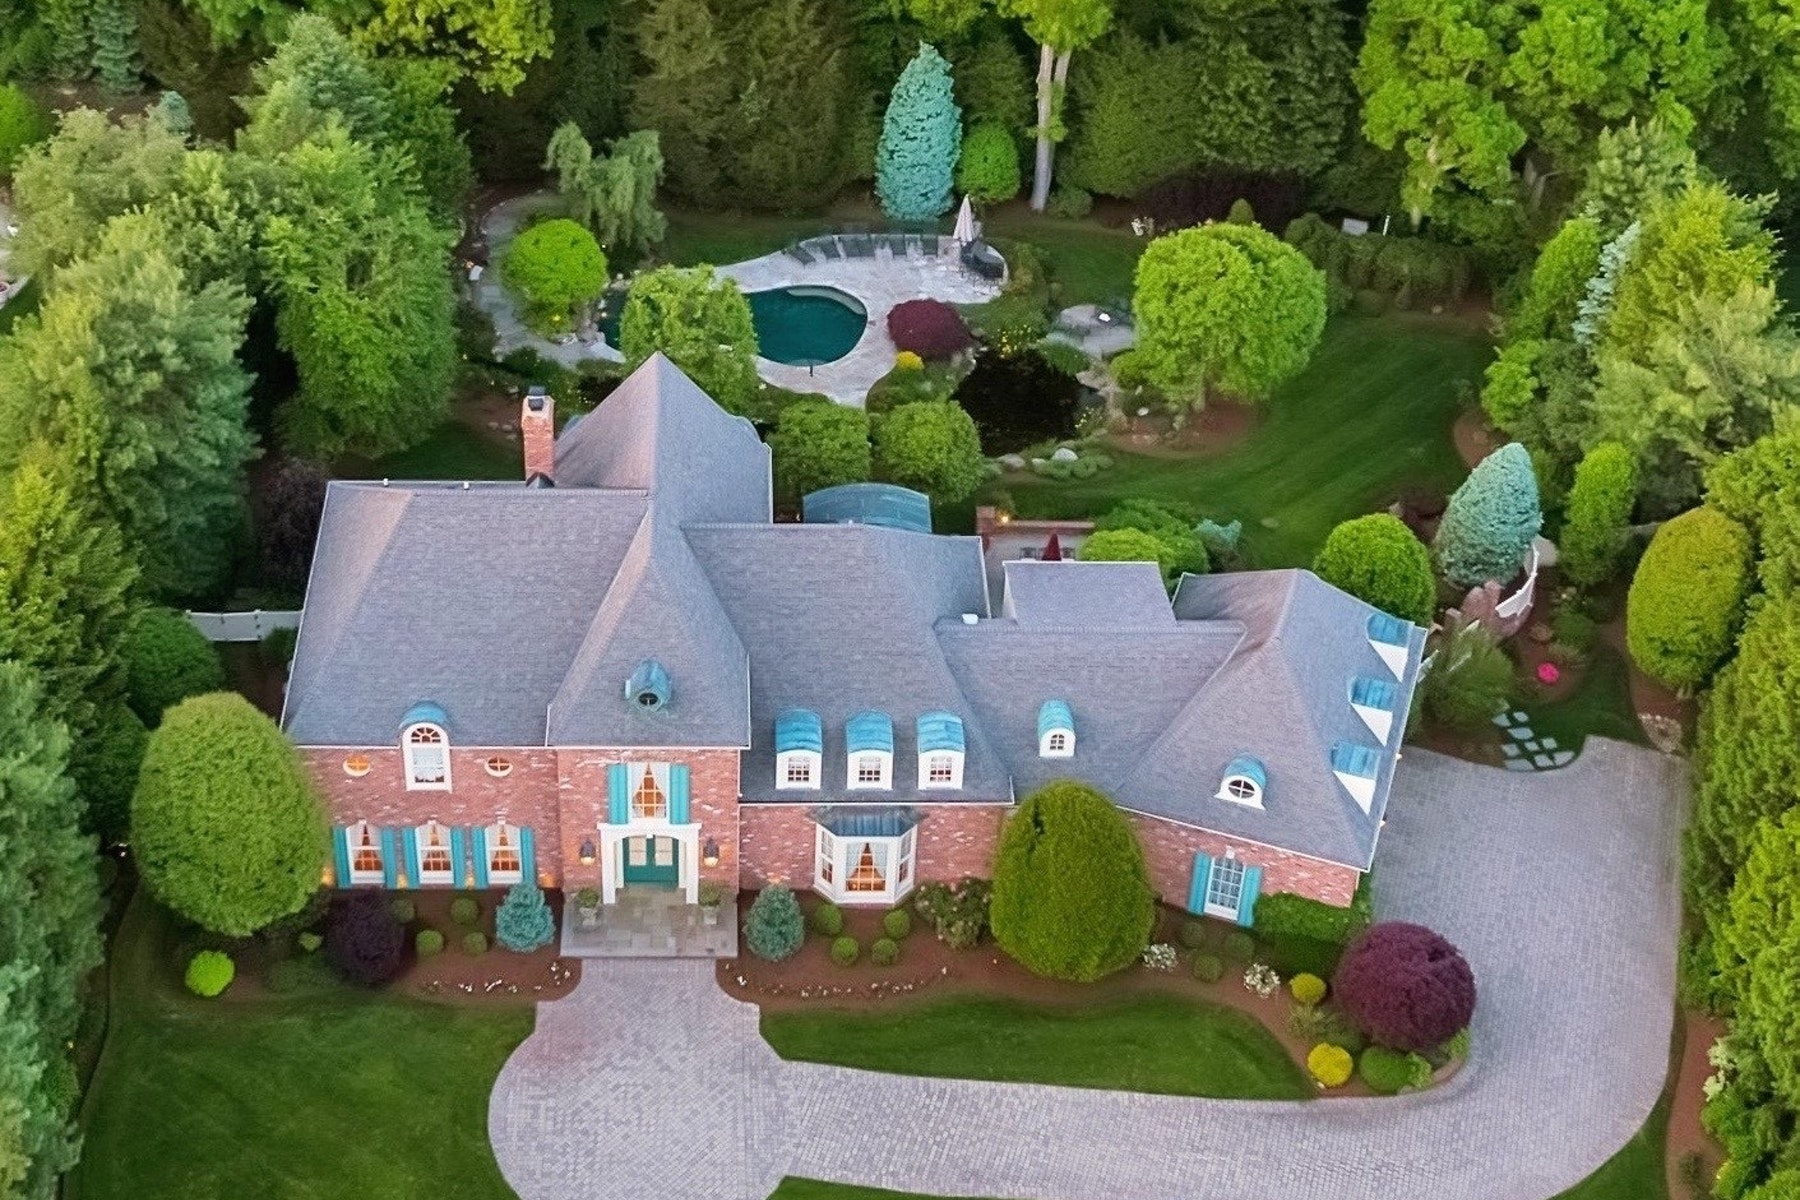 Single Family Home for Sale at European Grandeur and Sophistication 103 Greenfield Hill, Franklin Lakes, New Jersey 07417 United States